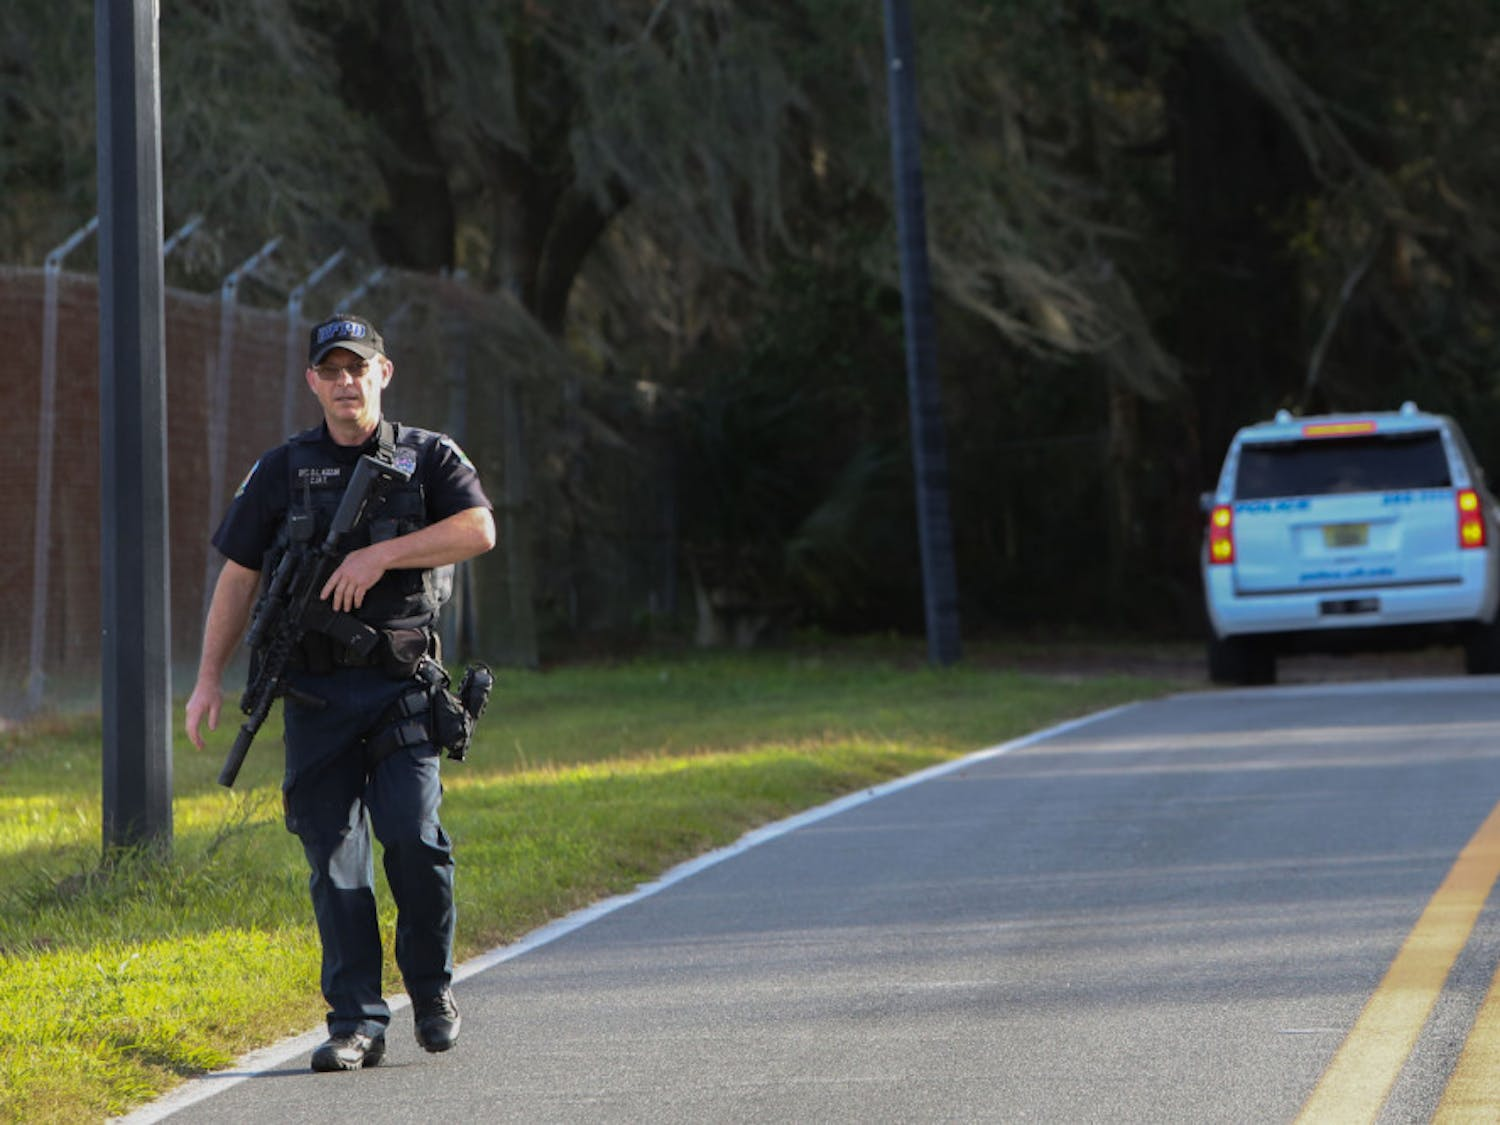 A University of Florida Police Department officer walks towards his vehicle Friday after searching a wooded area near the UF College of Veterinary Medicine for a suspect reportedly firing a gun at targets.